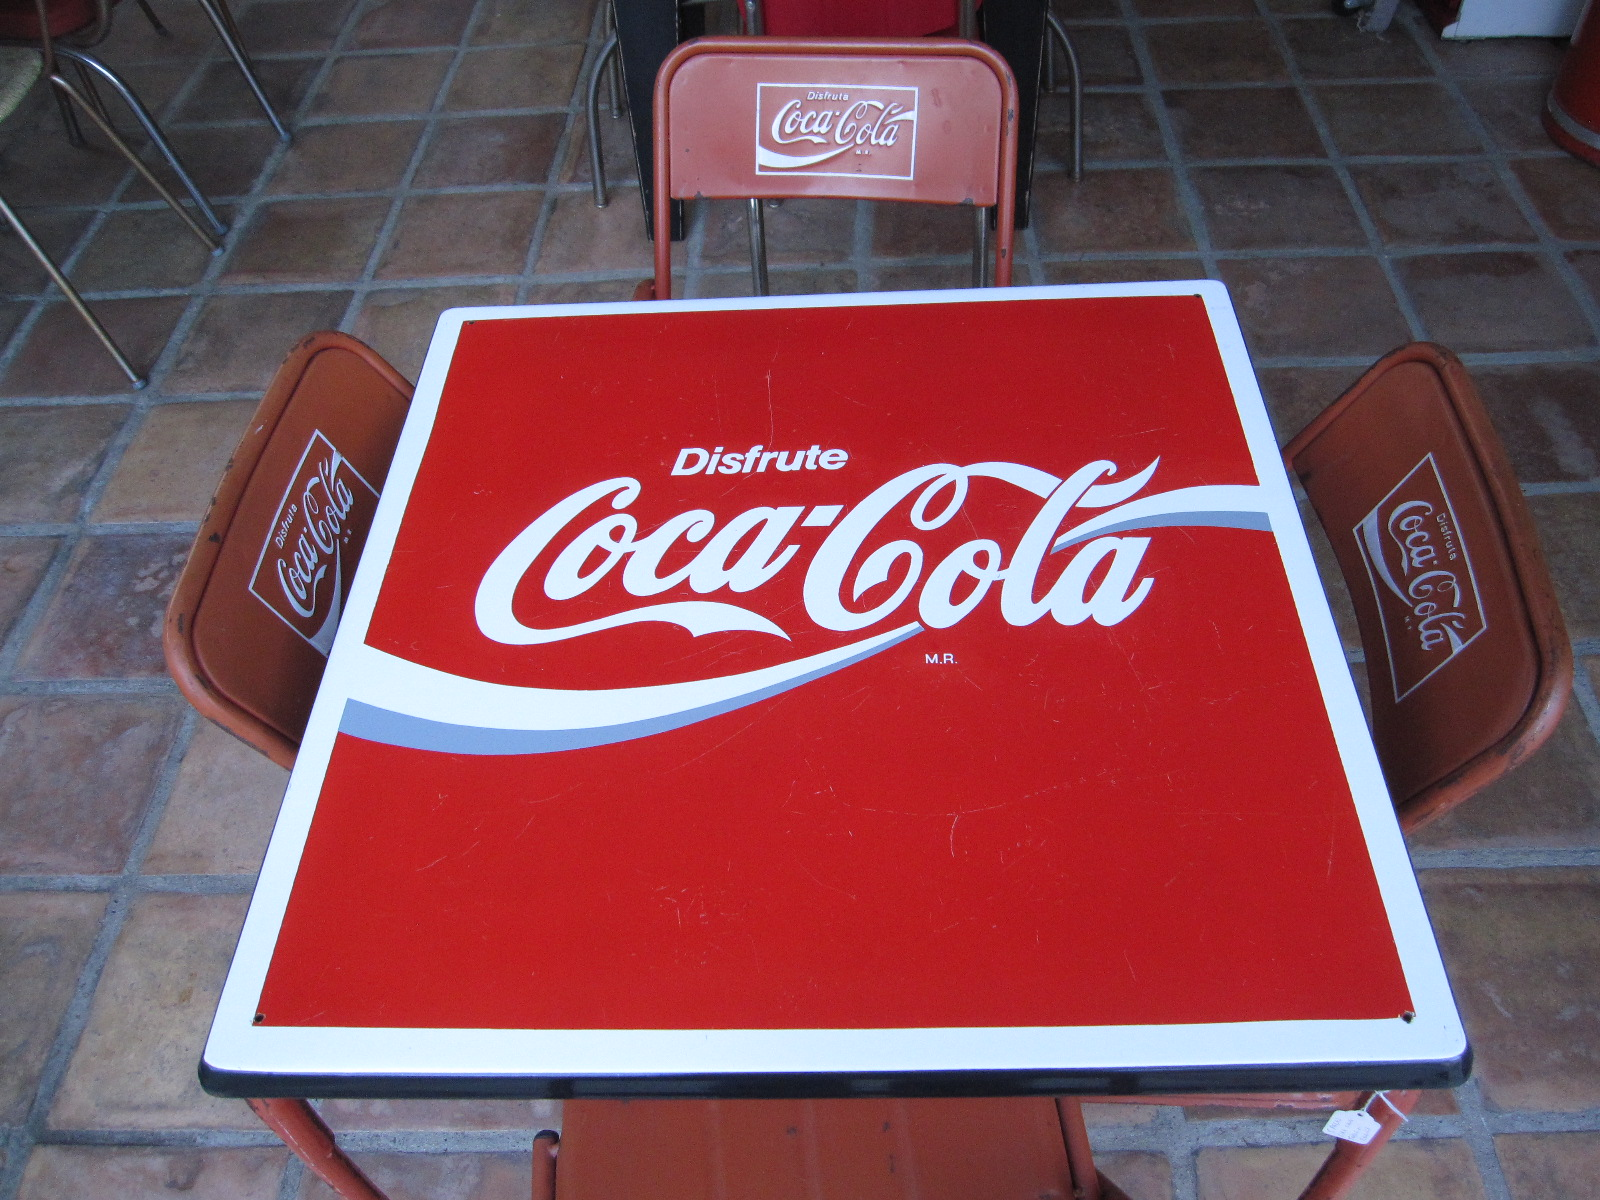 Coca Cola Chairs And Tables Desk Chair Mat For Wood Floor Abundance Of My Heart Collections On Sale